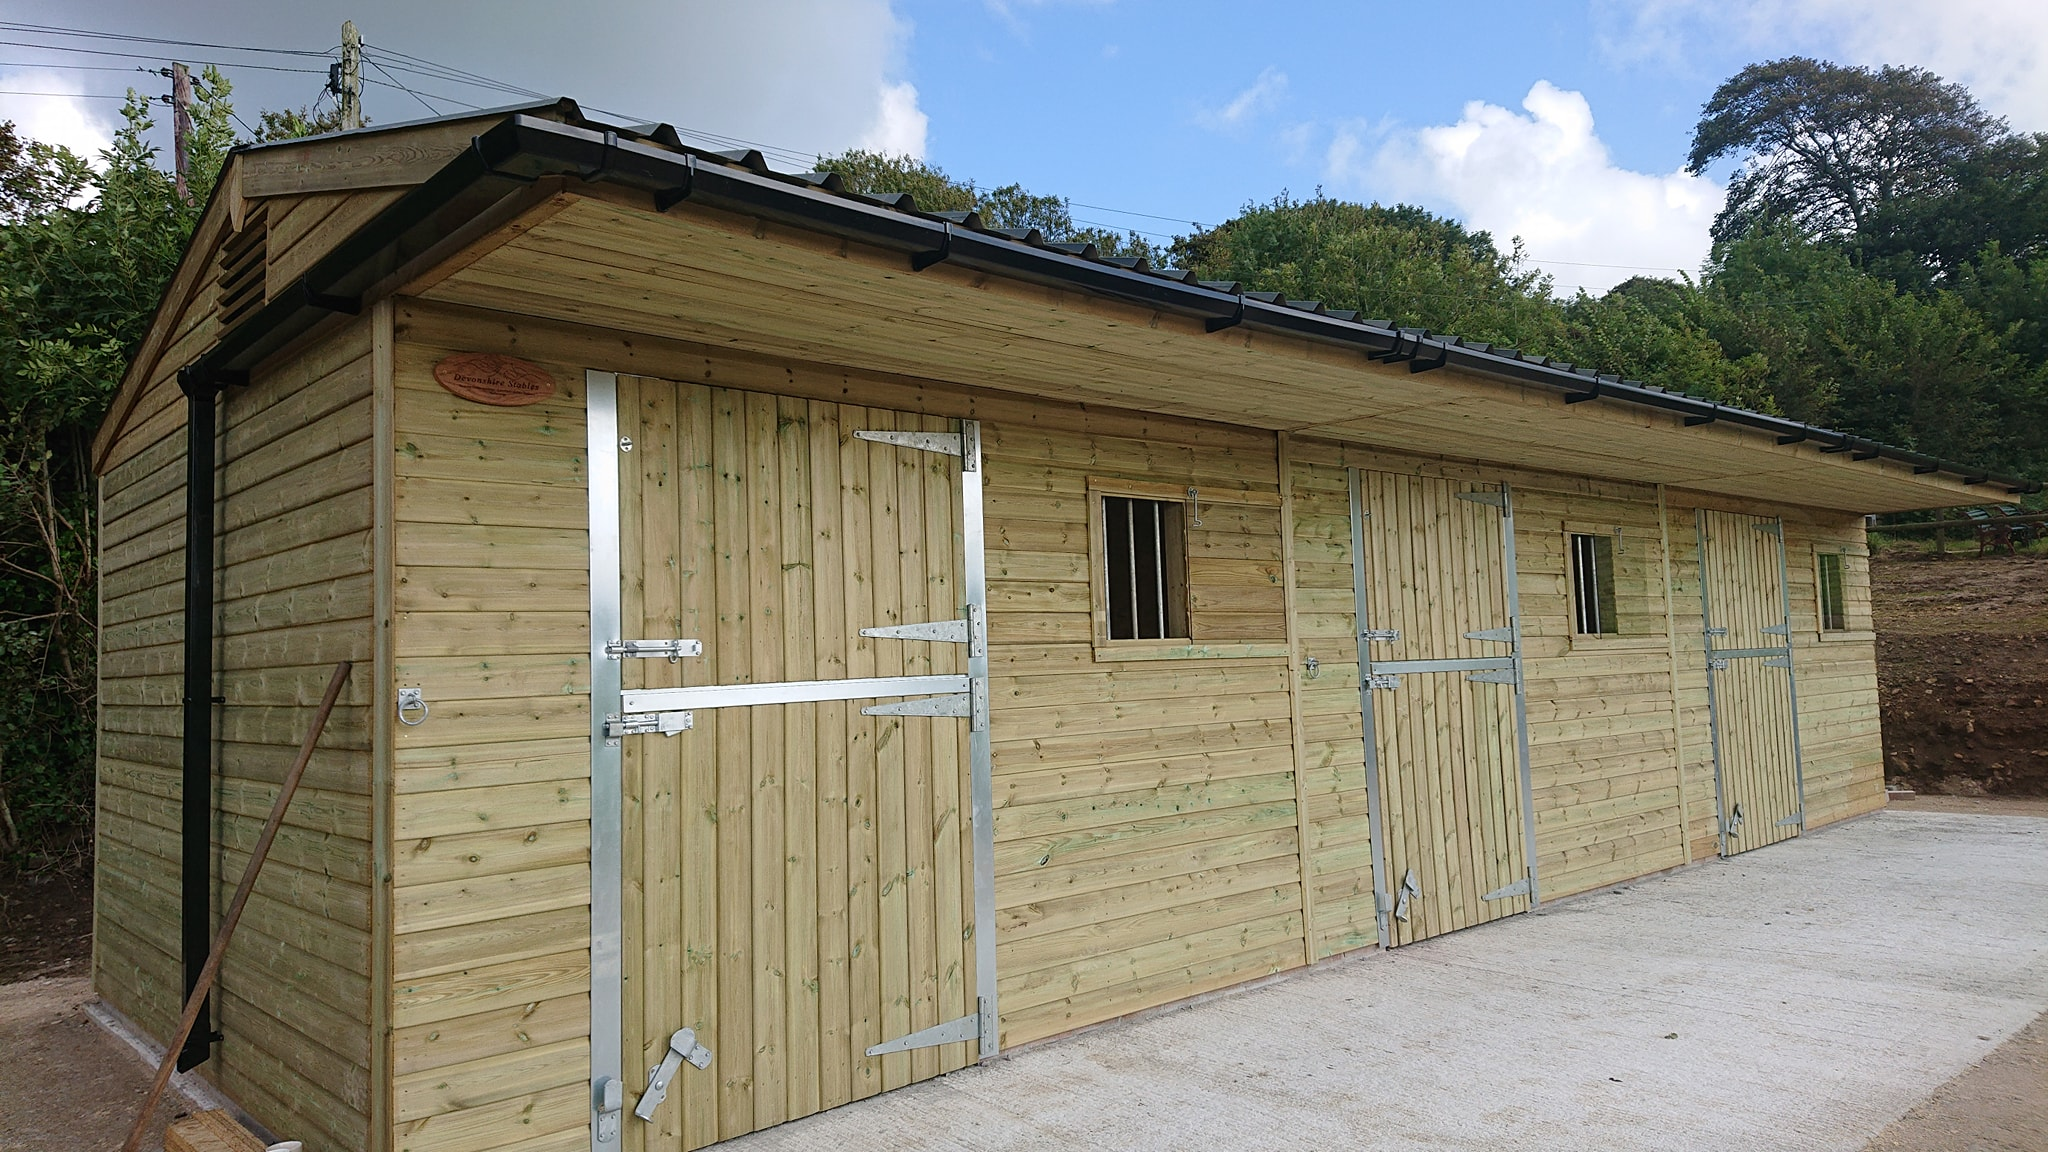 3 stables, frame protection